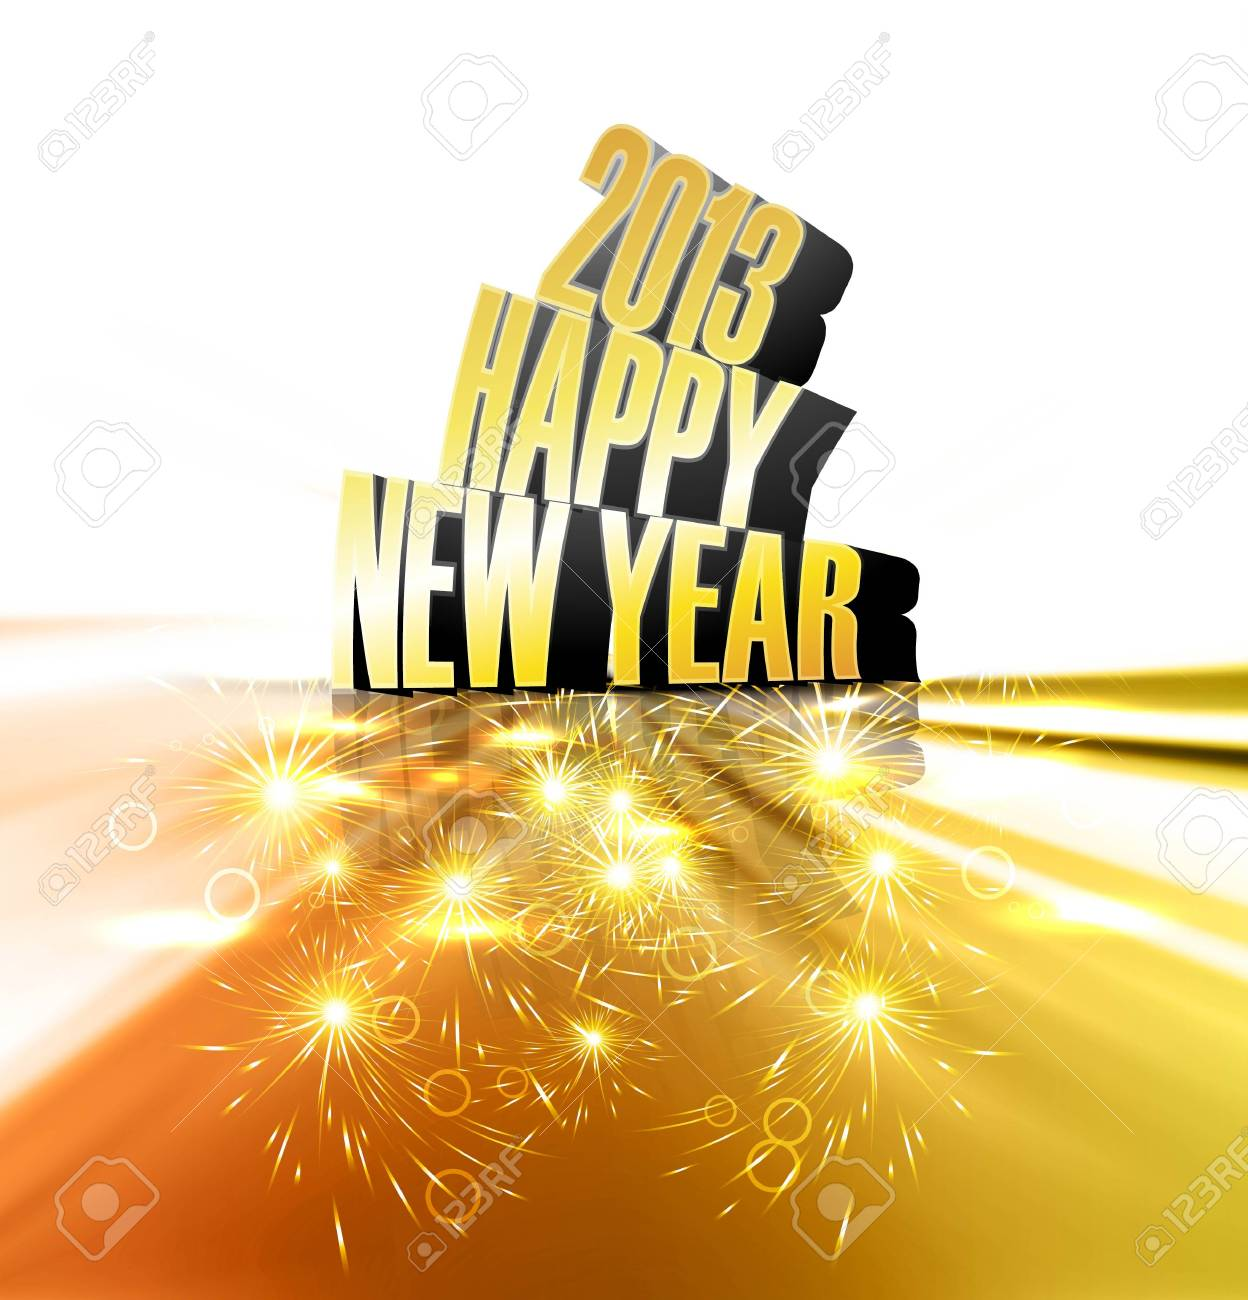 Happy new year 2013 reflection golden colorful shiny design Stock Vector - 18389619